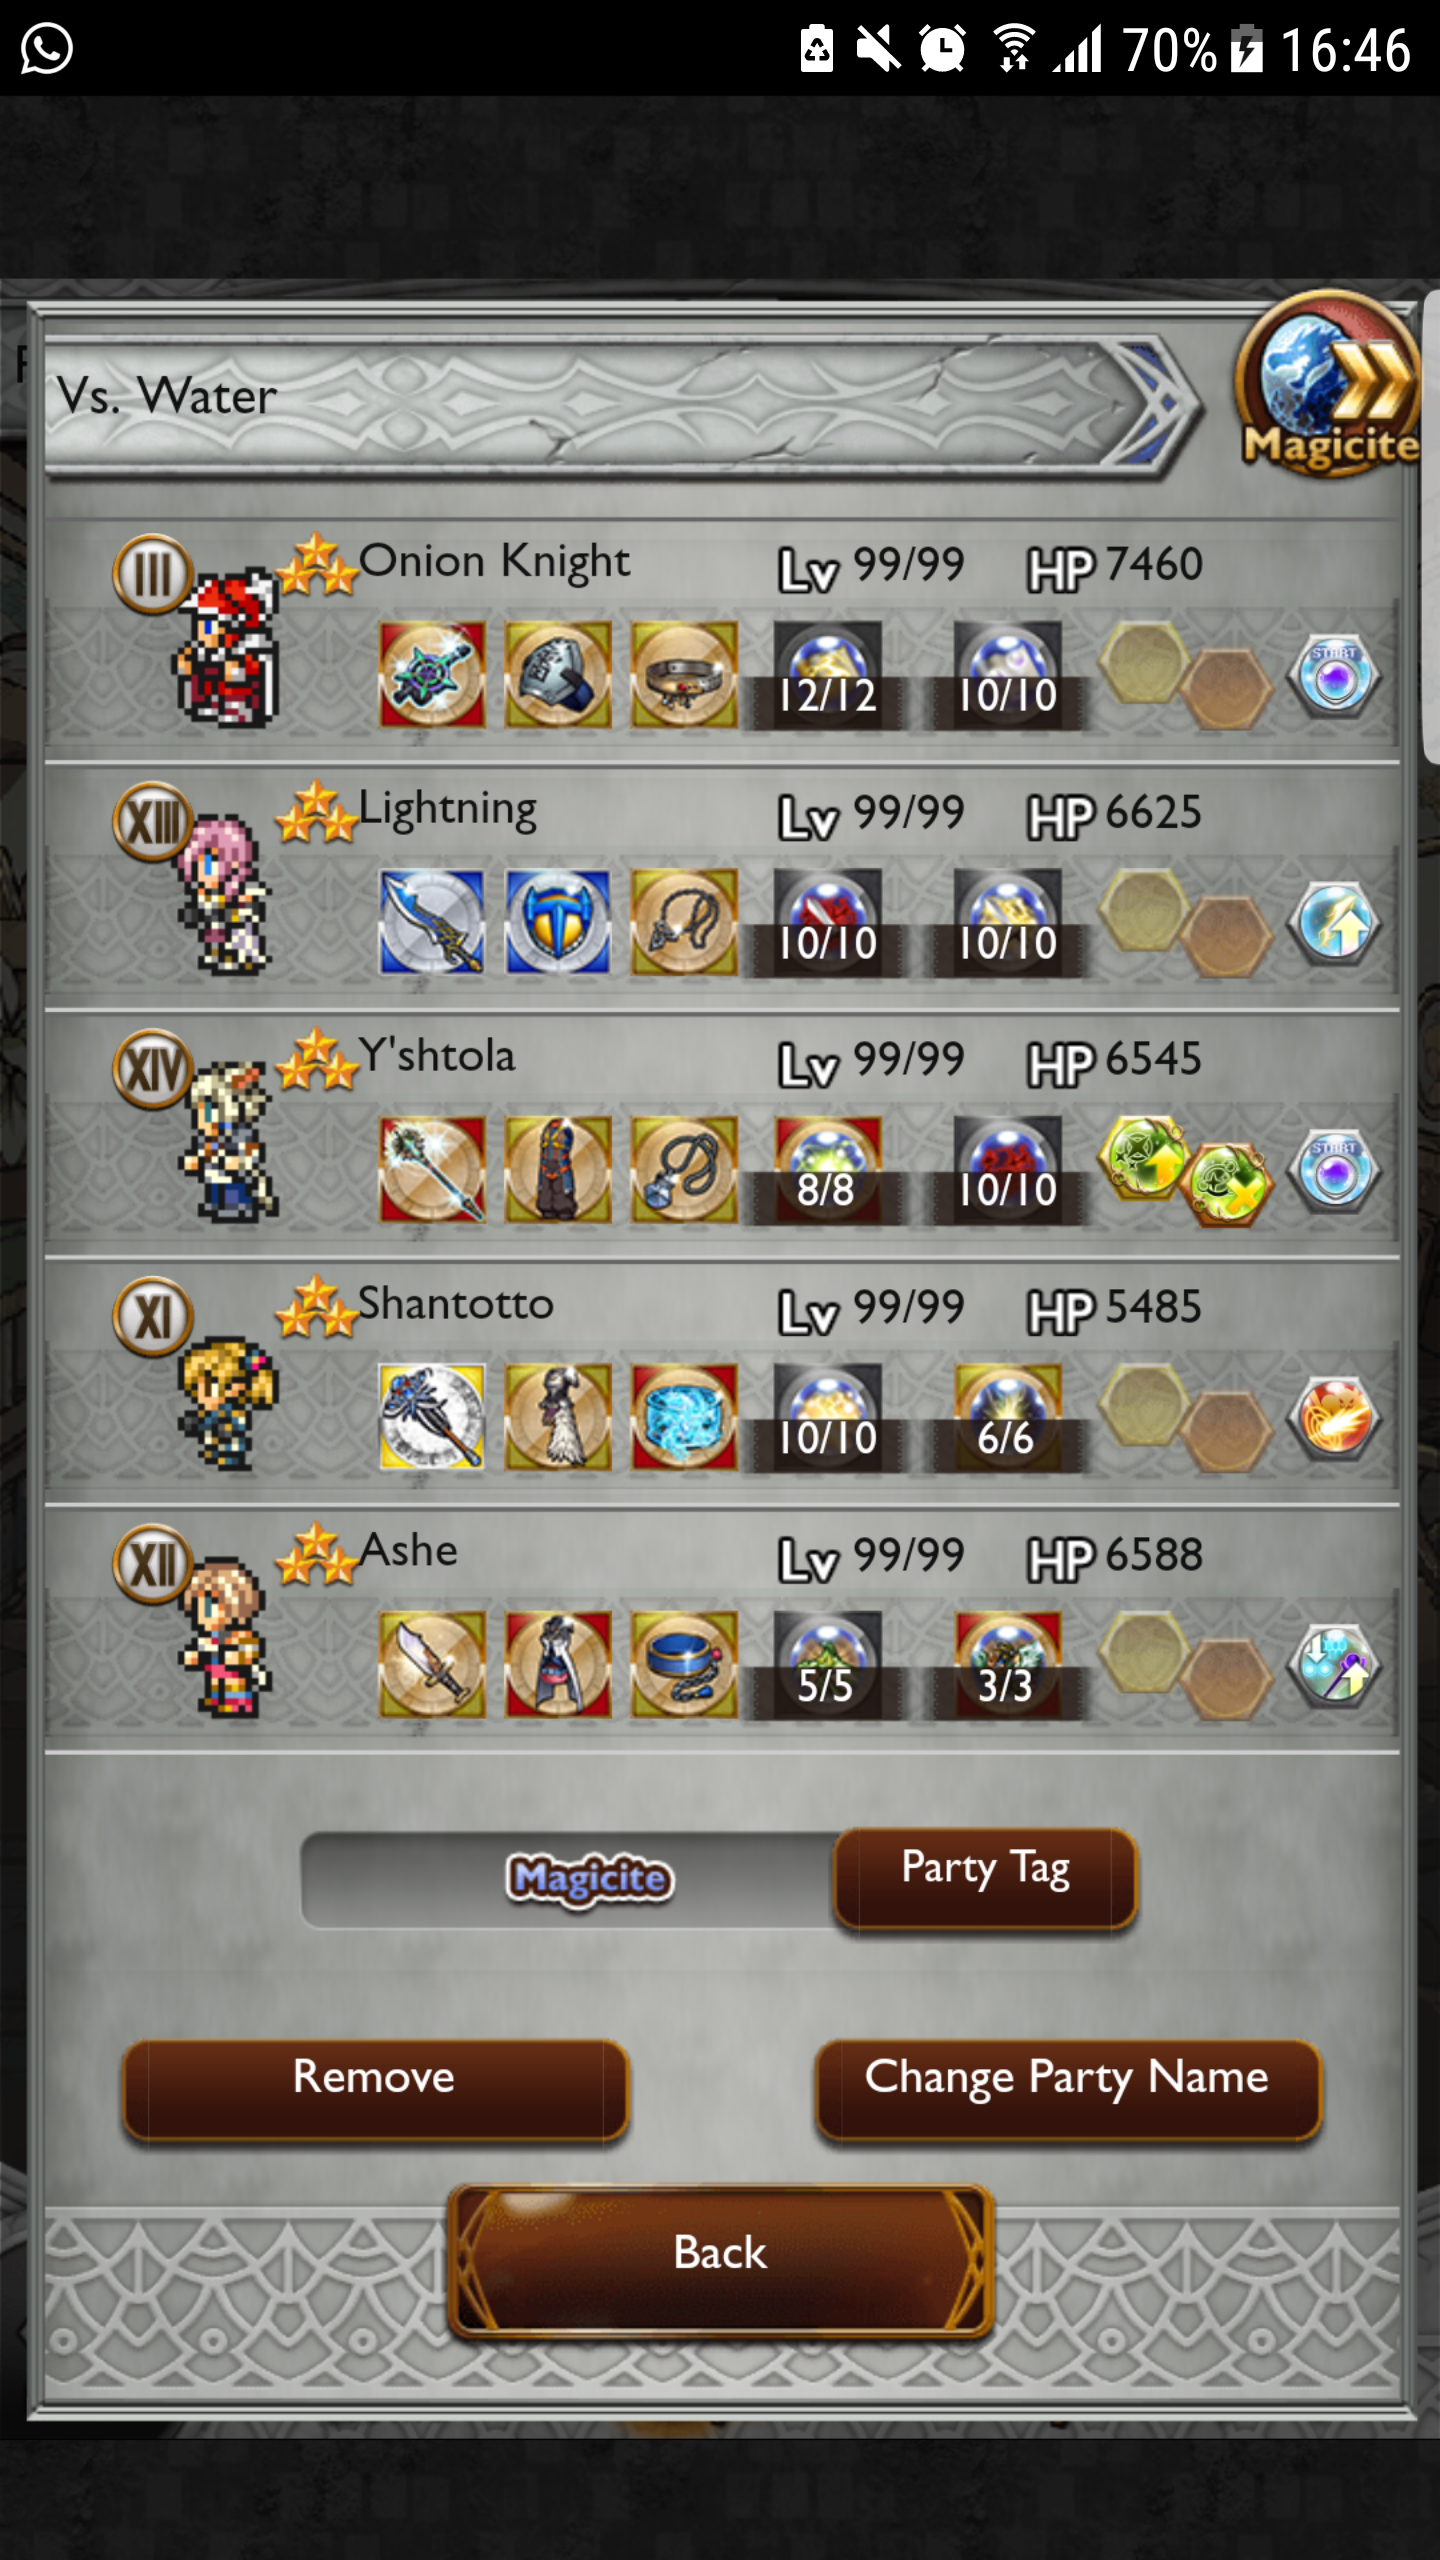 alvinho games with celes have that bring damage squall would syldra umaro gear magicite dive other only instead just from boost start chain knight chase ditch healer option onion materia laguna uses thunder element realized well edit disregard lightning ward going then spell another dampen were slot healers decently